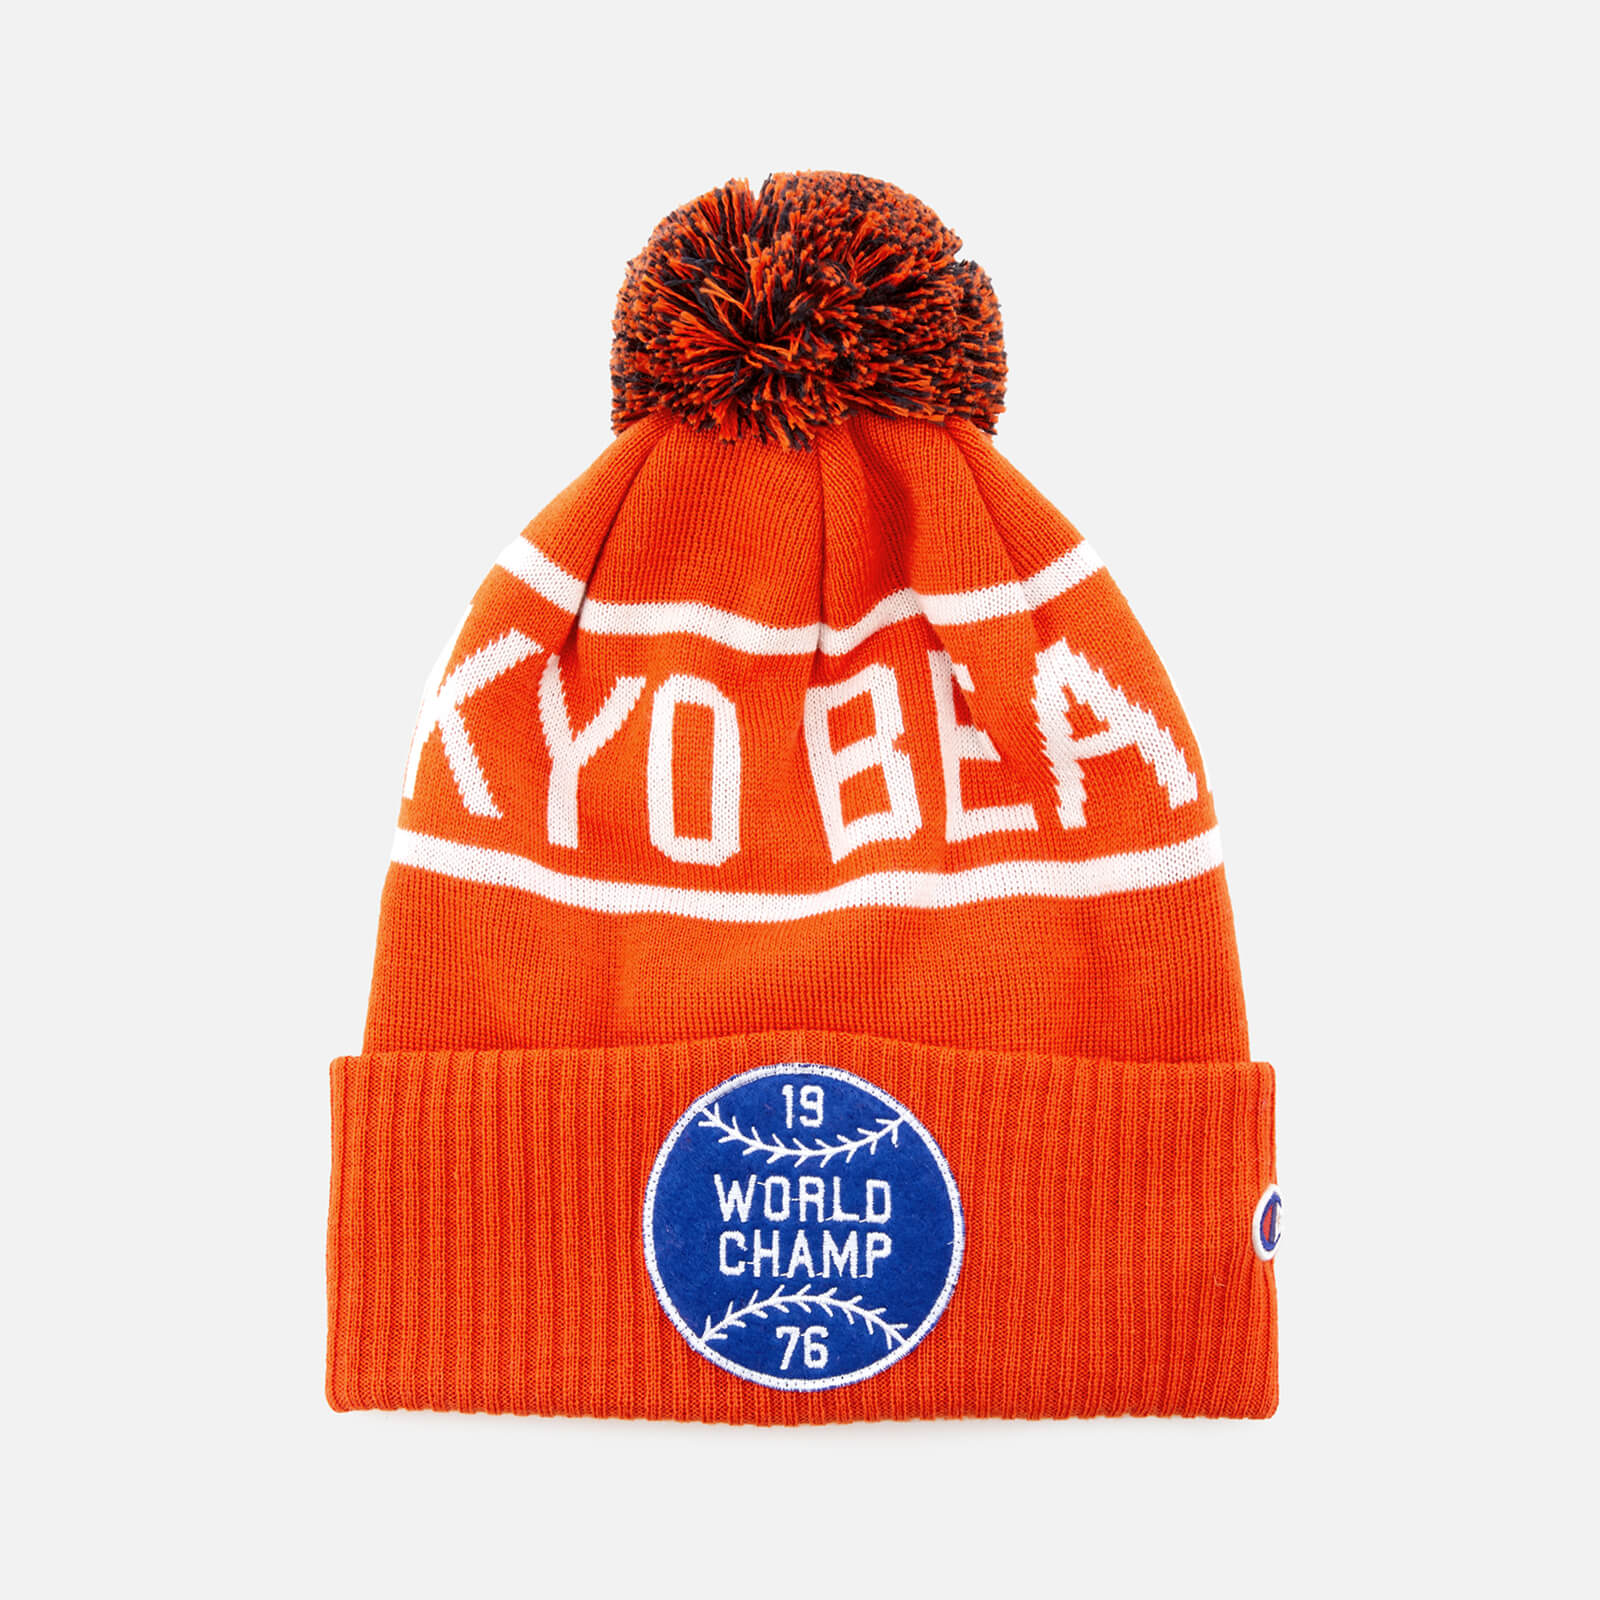 0d709f6c840a2 Champion X Beams Men s Beanie Cap - Orange - Free UK Delivery over £50